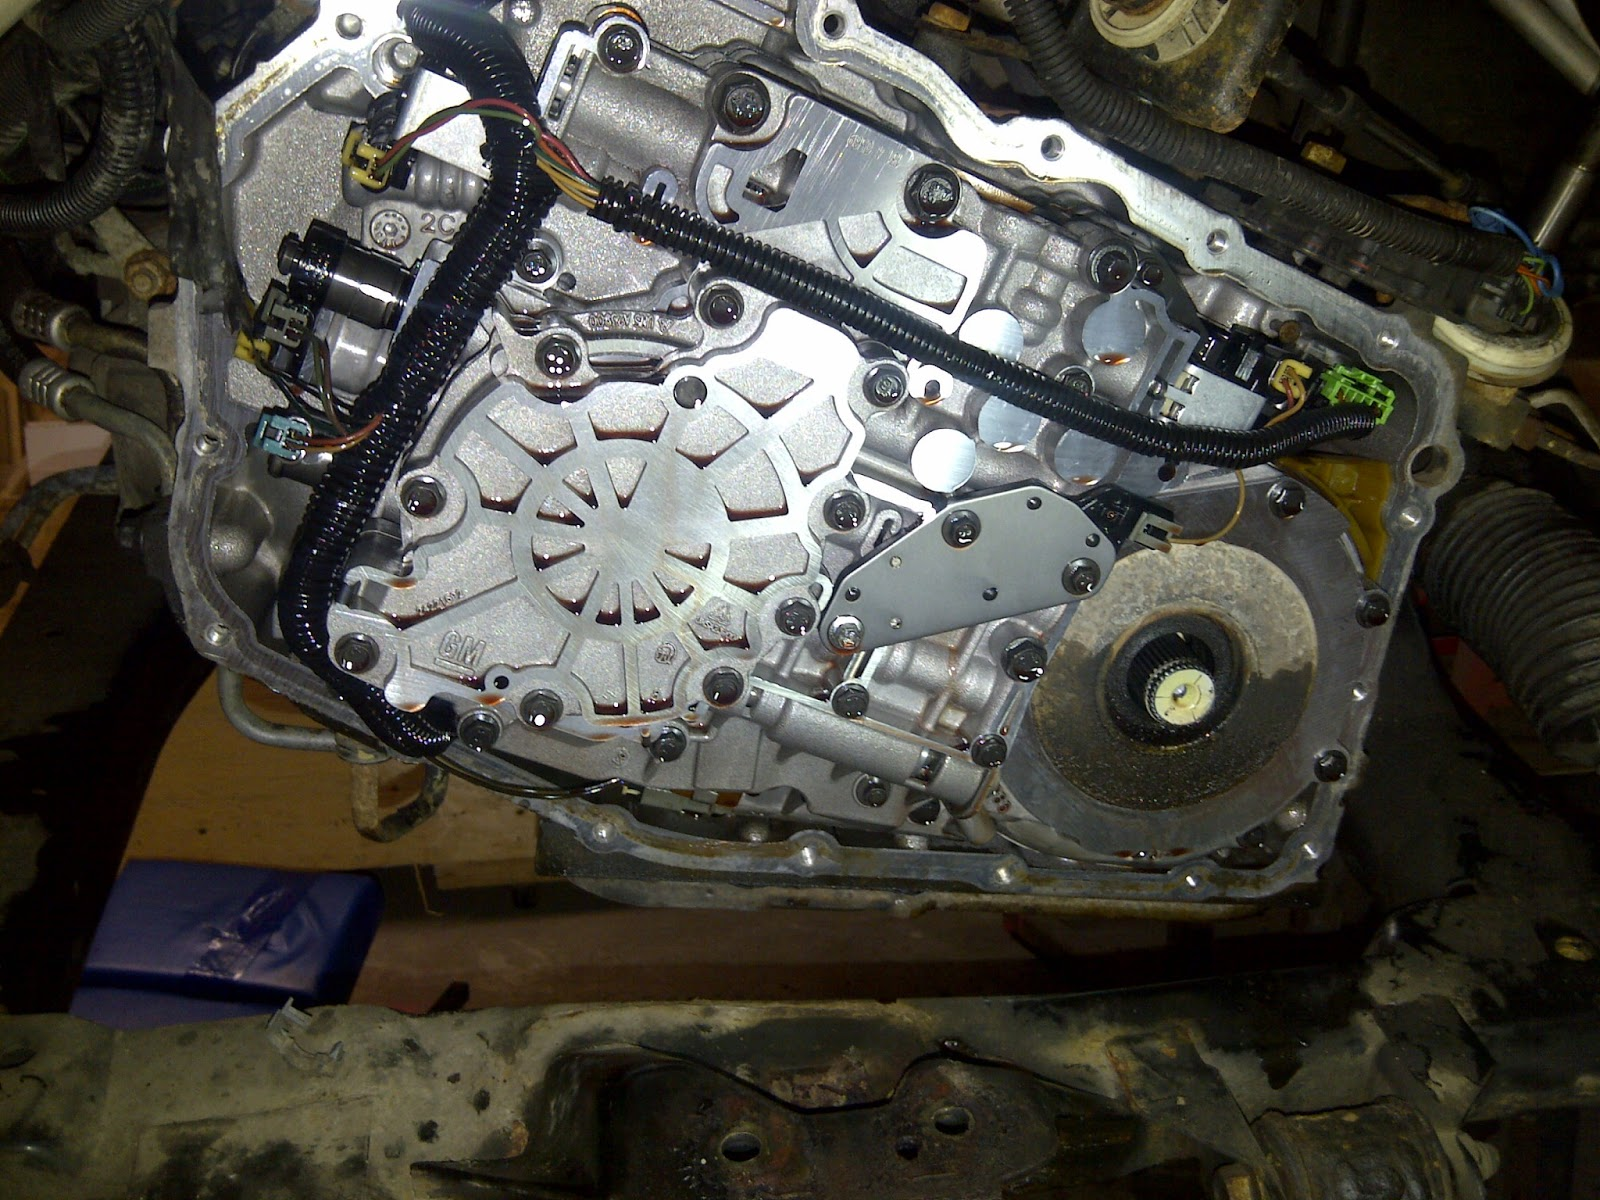 Labor Hours To Replace Transmission >> Another Day Another Project: Fixing My Van's Transmission